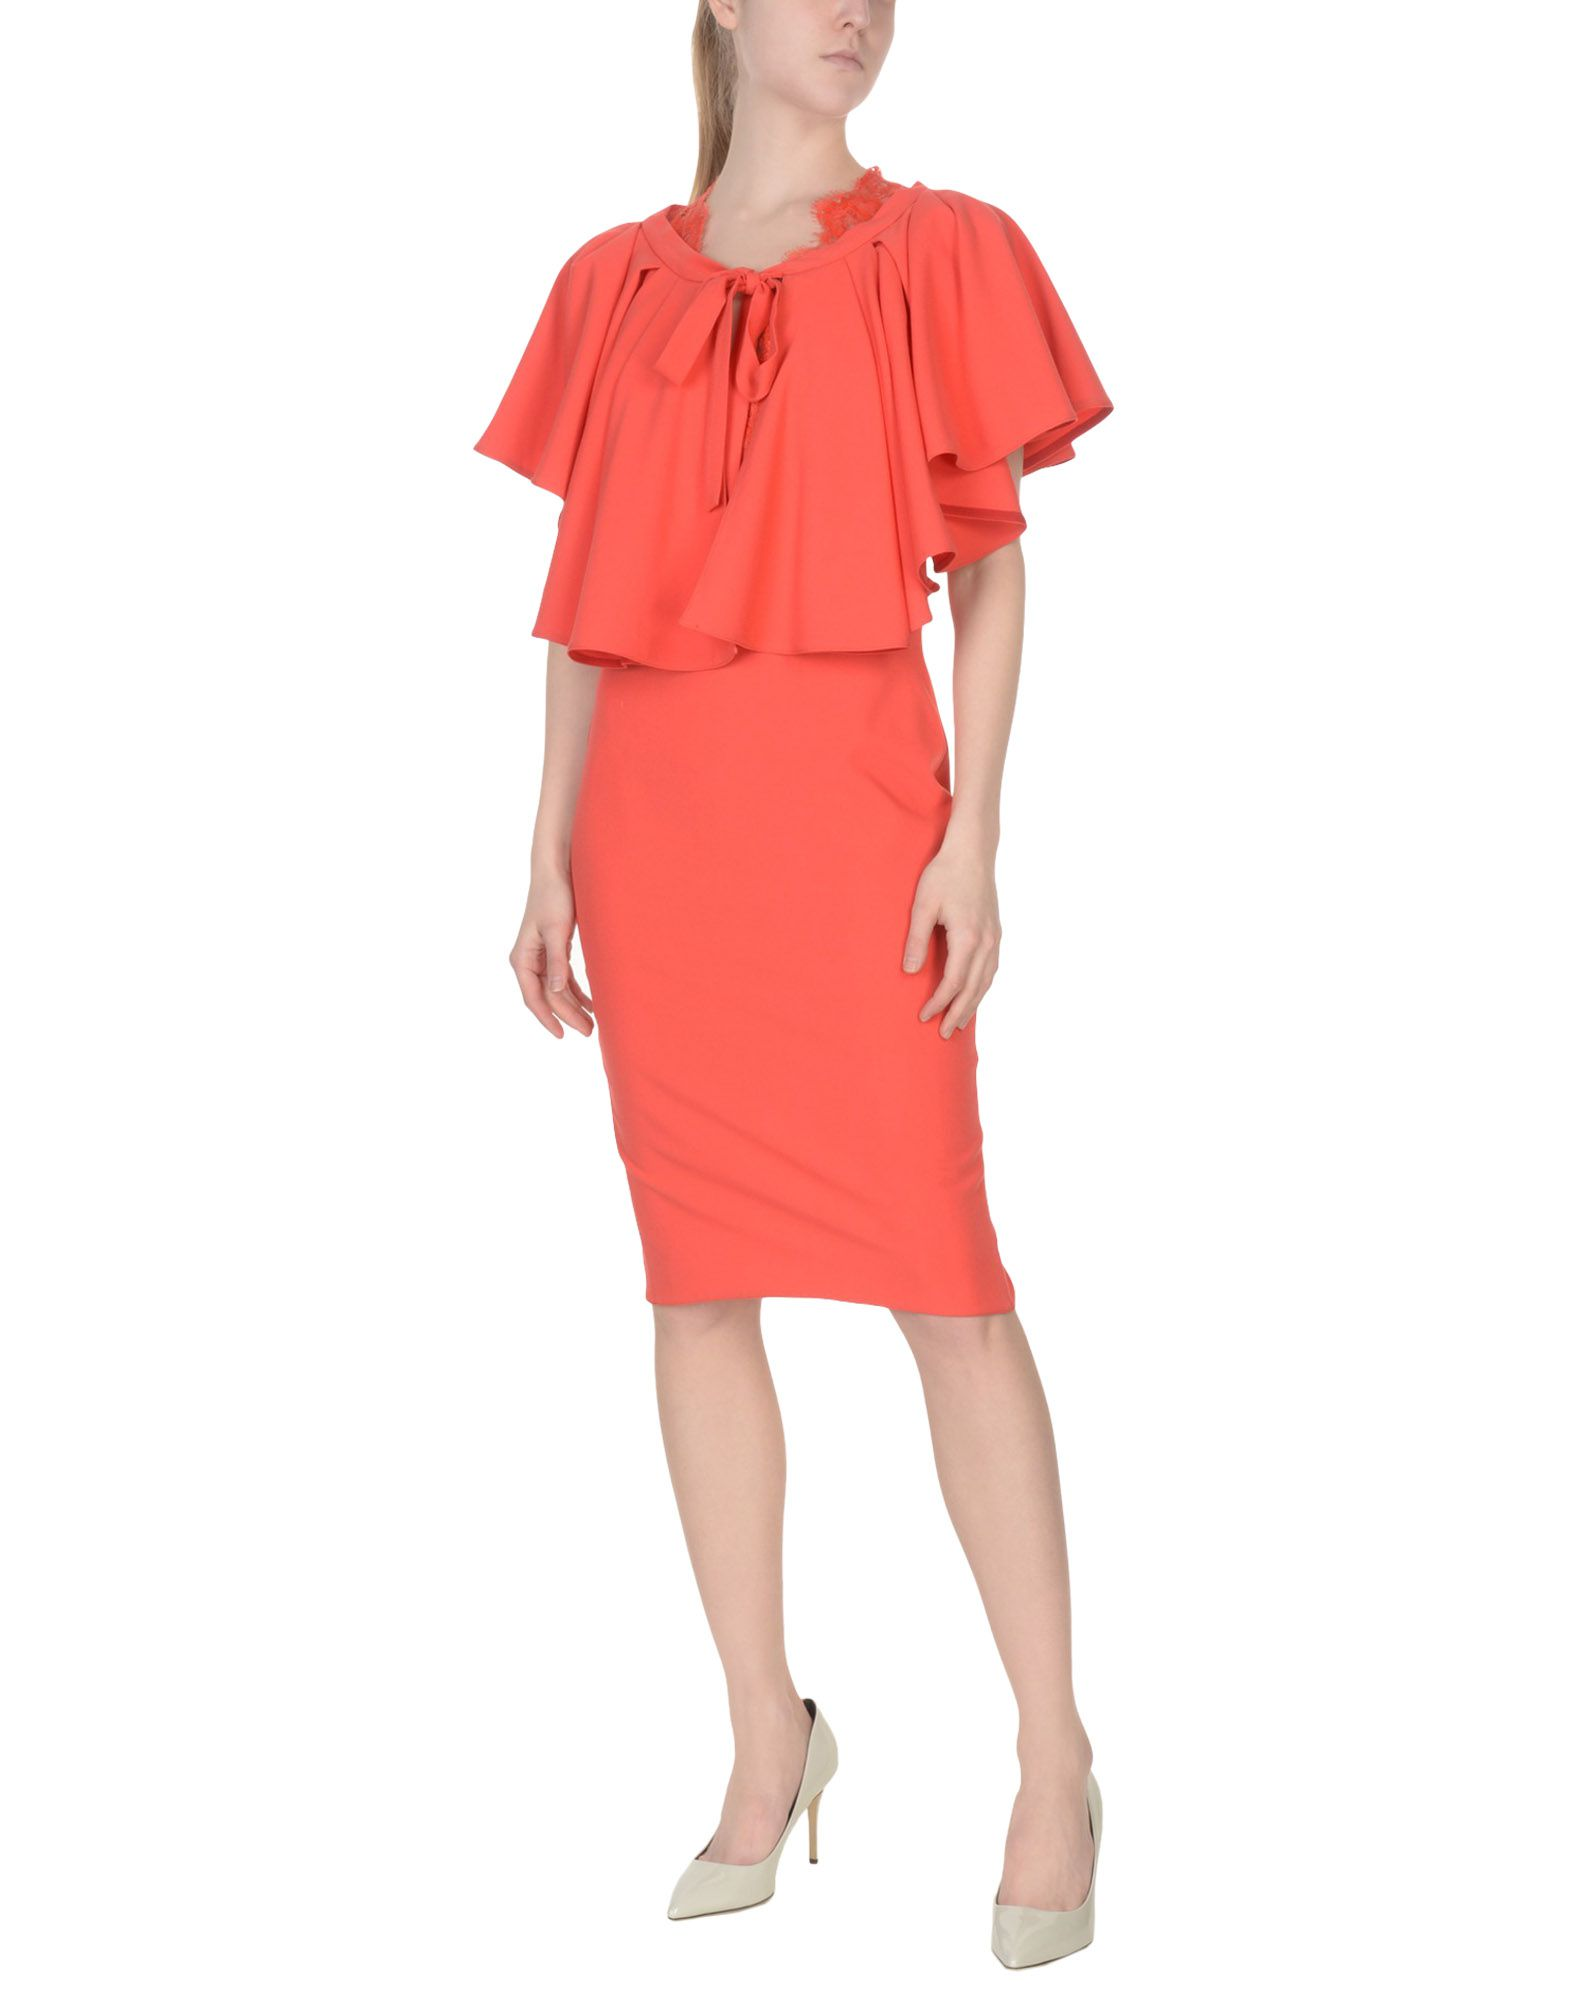 RHEA COSTA Suit in Coral